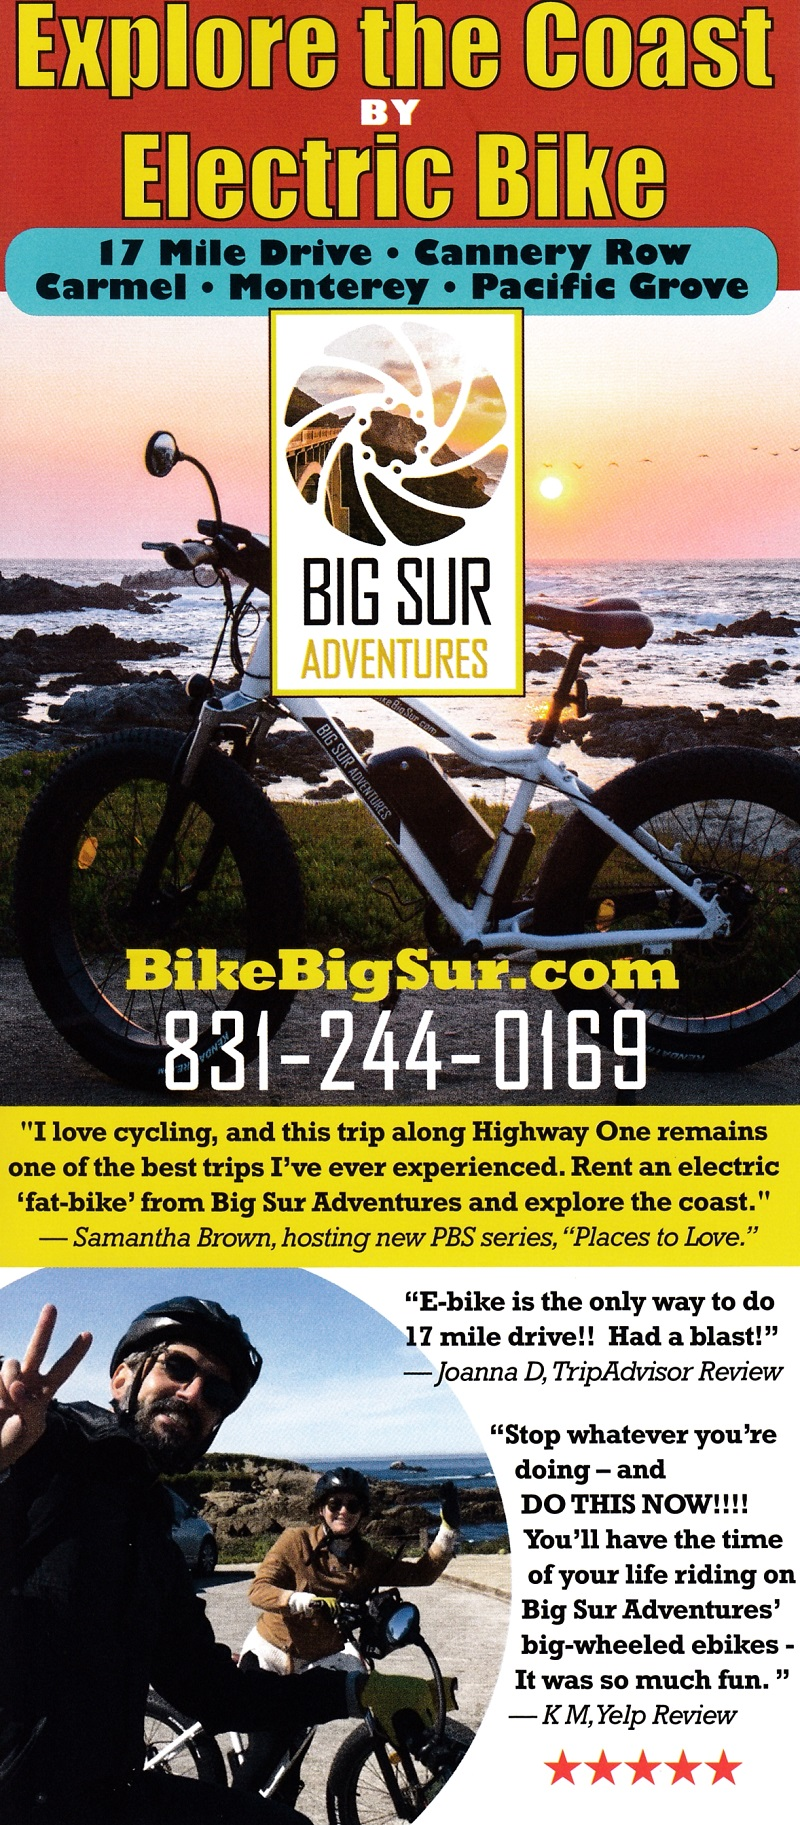 Big Sur Adv - Electric Bike